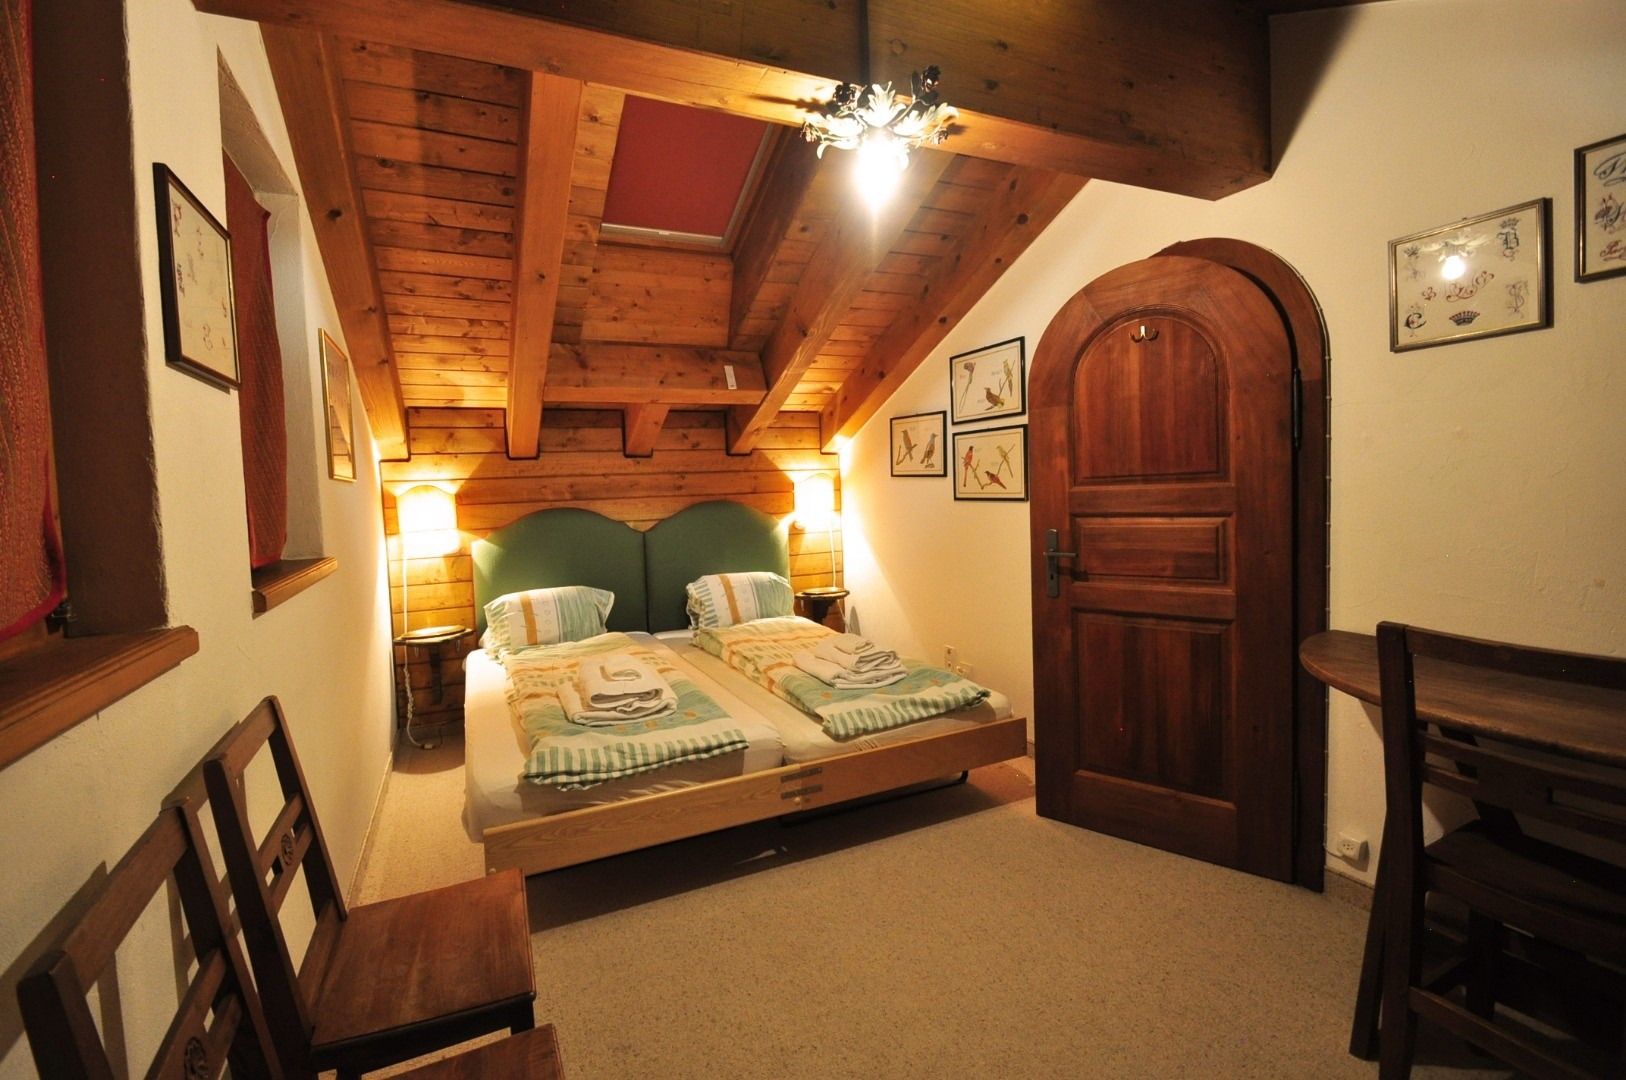 ZermattCervinoUpstairsBedroom2.jpg